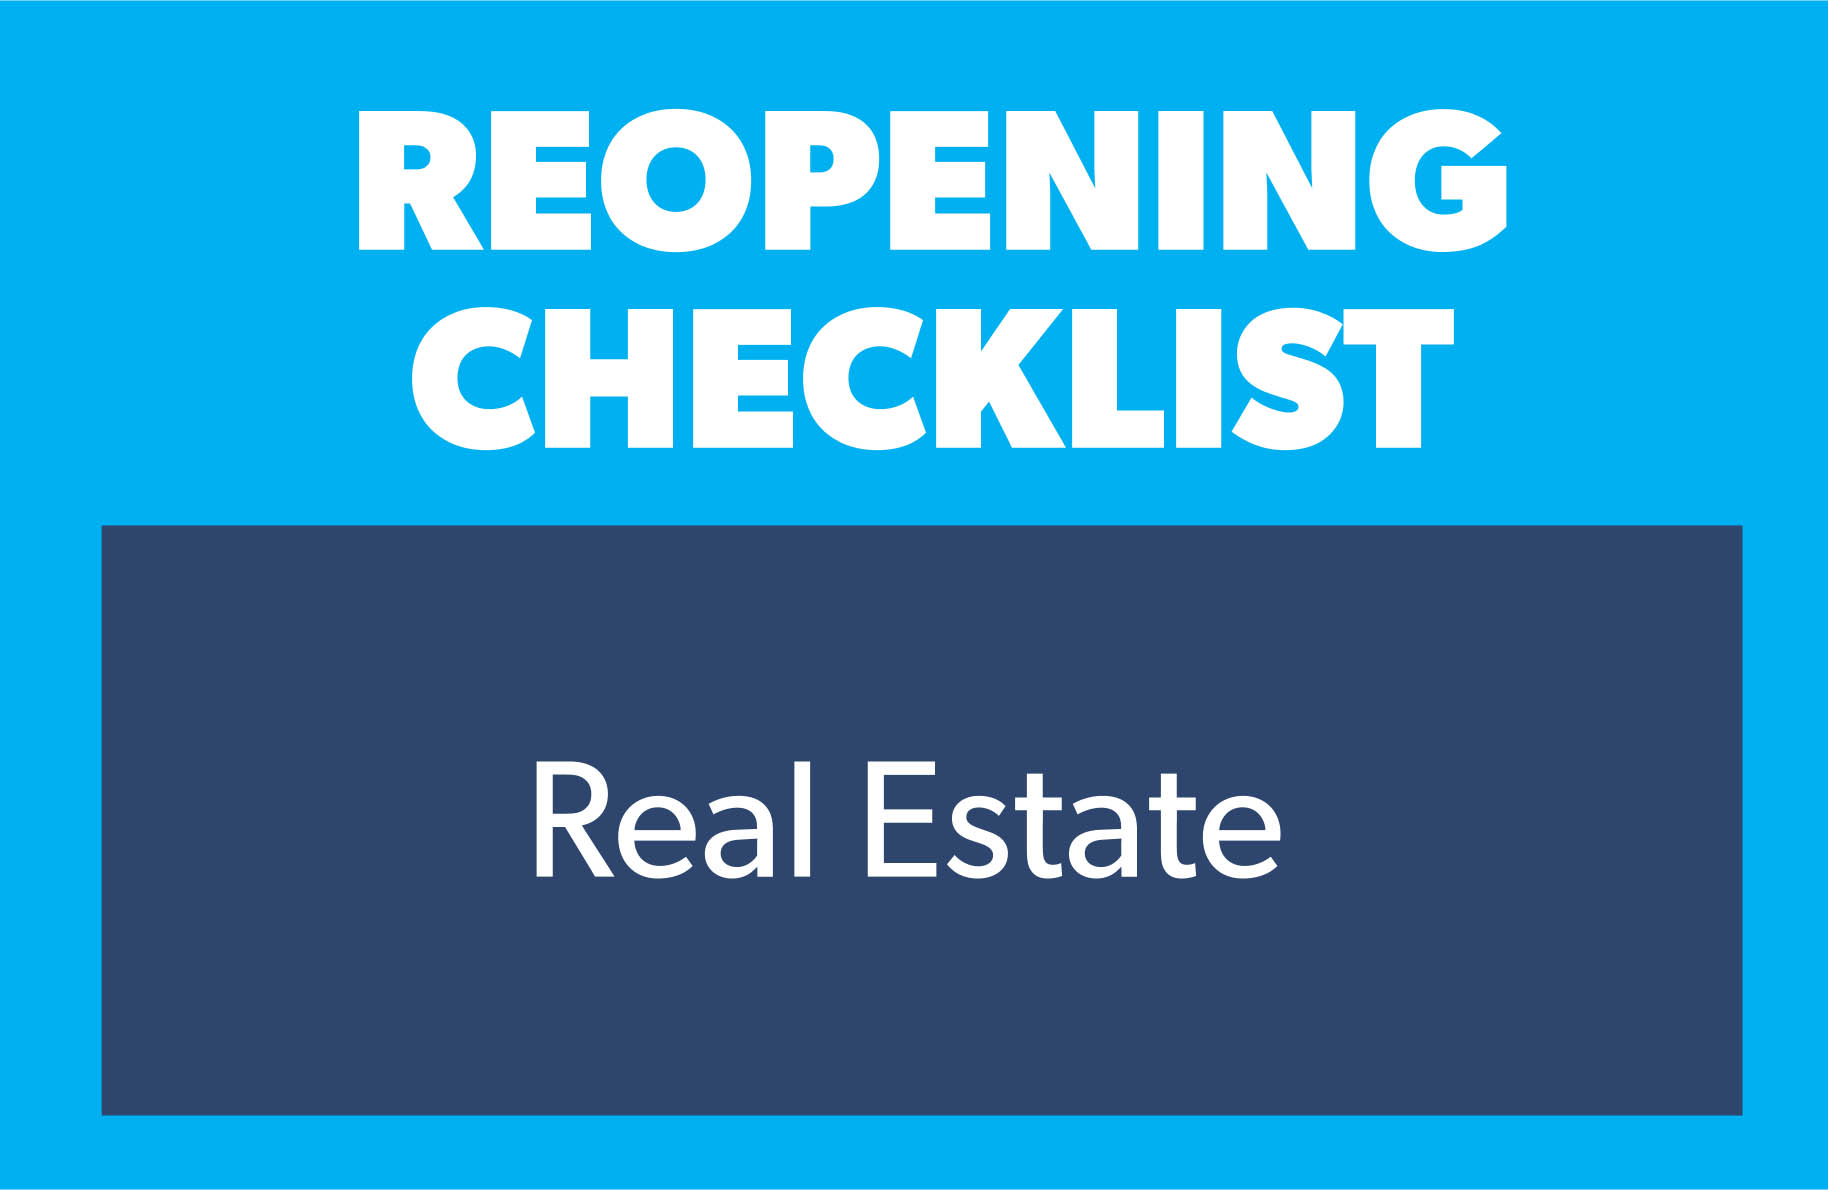 checklist real estate